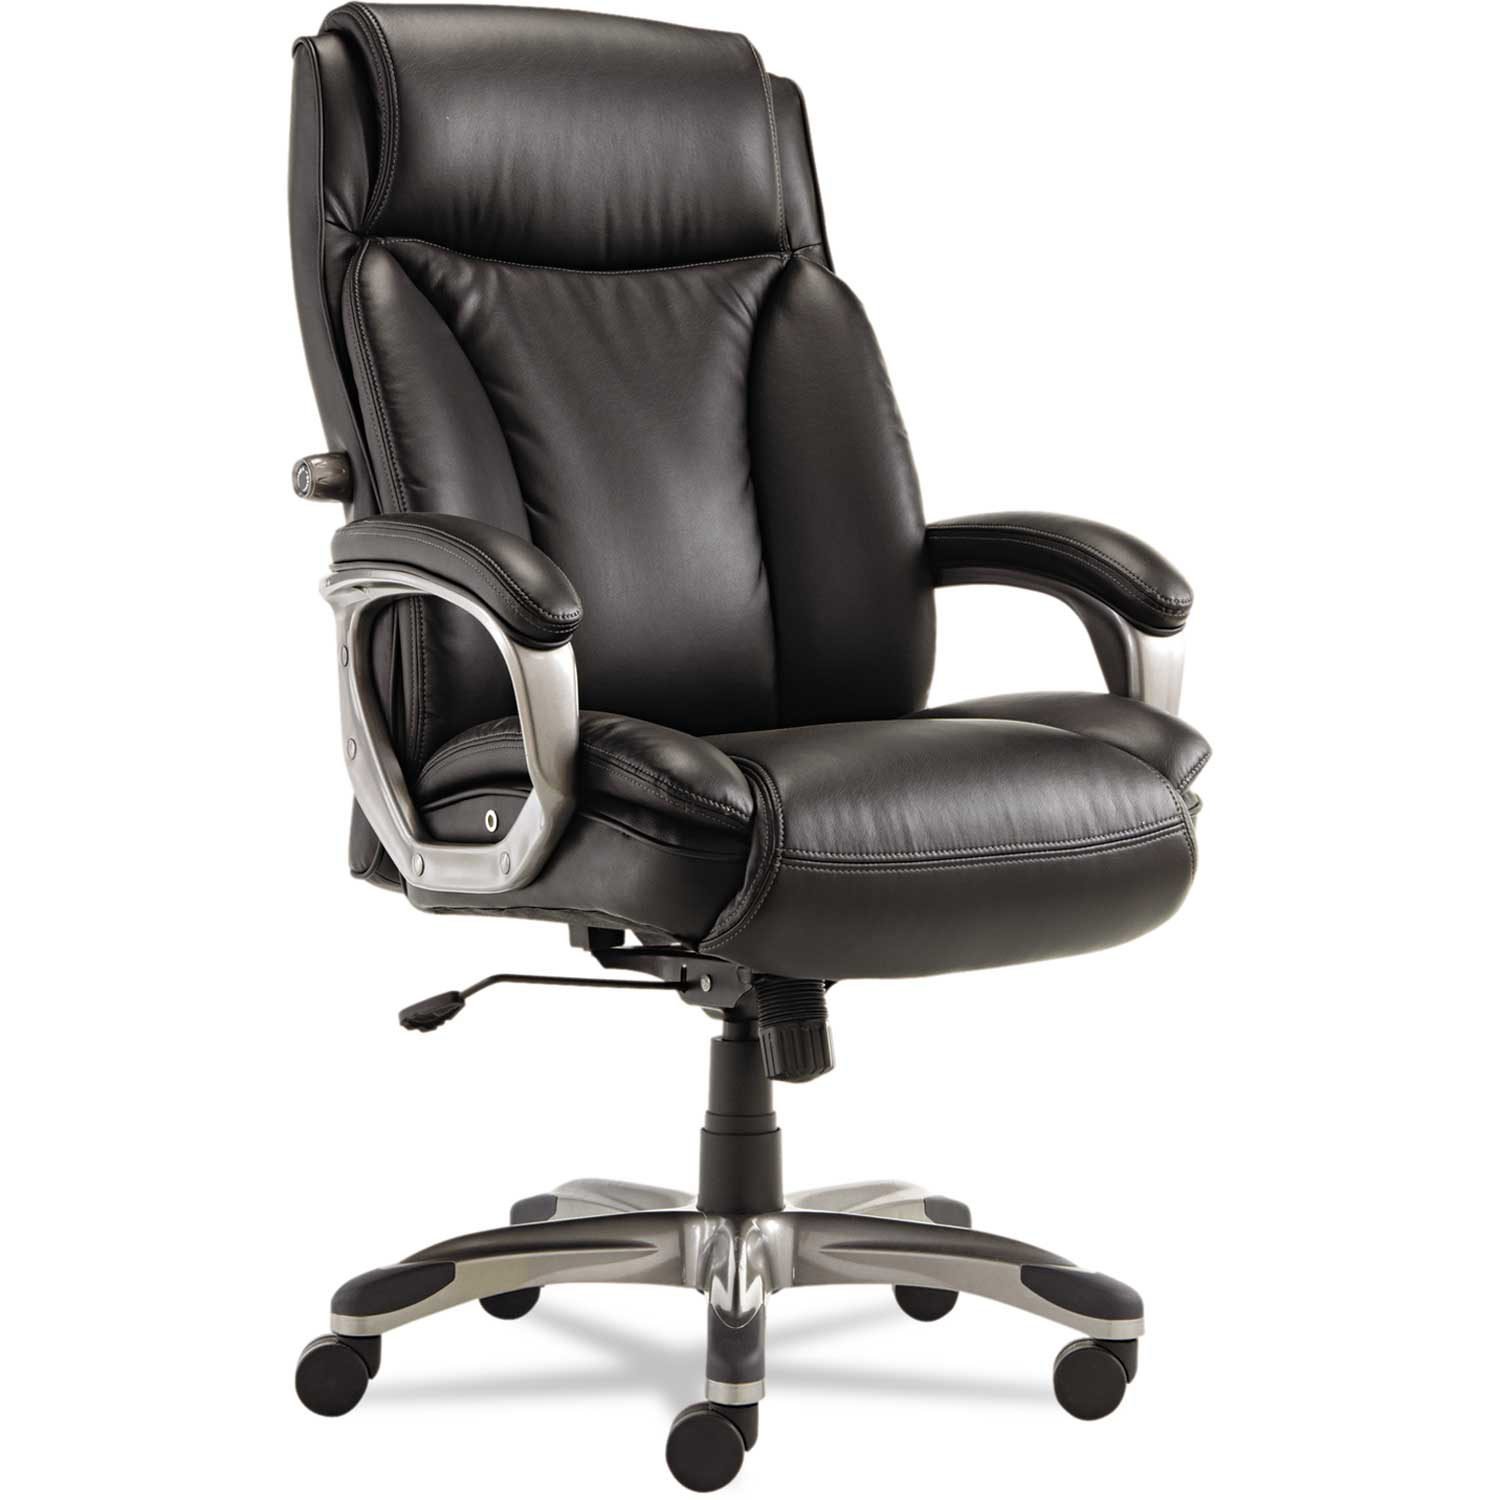 Alera Executive Leather Chair with Coil Spring Cushioning Leather Black Veon Series  by